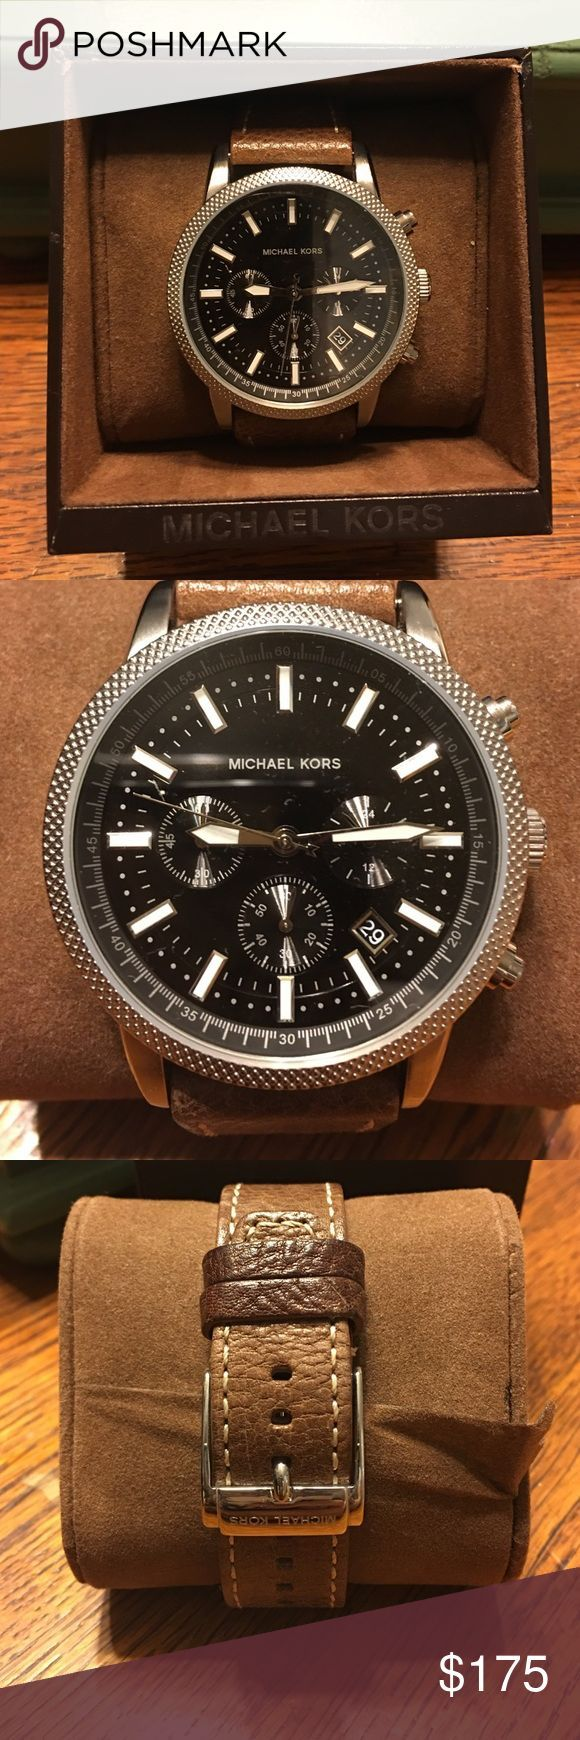 Michael Kors Men's Watch Worn three times. Great condition. Comes with original box and booklet Michael Kors Accessories Watches - mens watches online, invicta mens watches, branded watches for mens